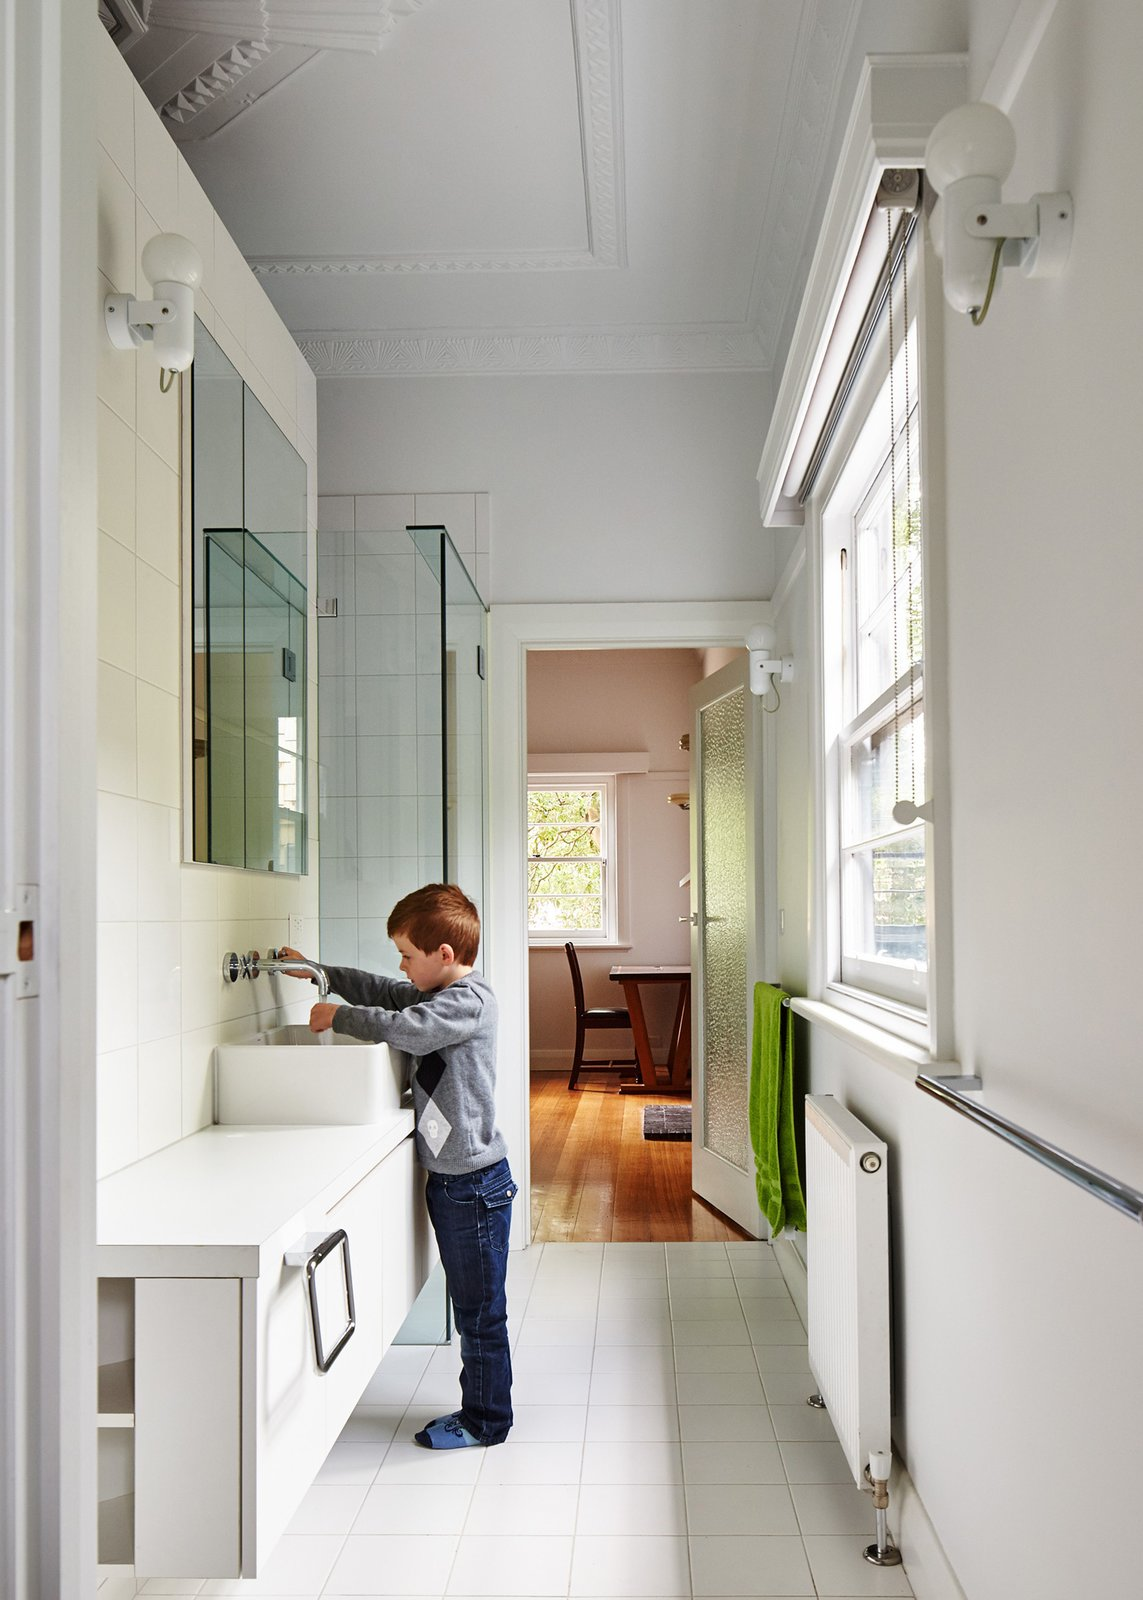 Bath Room, Vessel Sink, and Ceramic Tile Wall In the main bathroom, Art Deco crown molding reminds residents of the house's past. New fixtures include white laminate cabinets and sinks and faucets by Roger Seller.  Photo 5 of 12 in This Transformed Melbourne House Resembles a Quirky Village